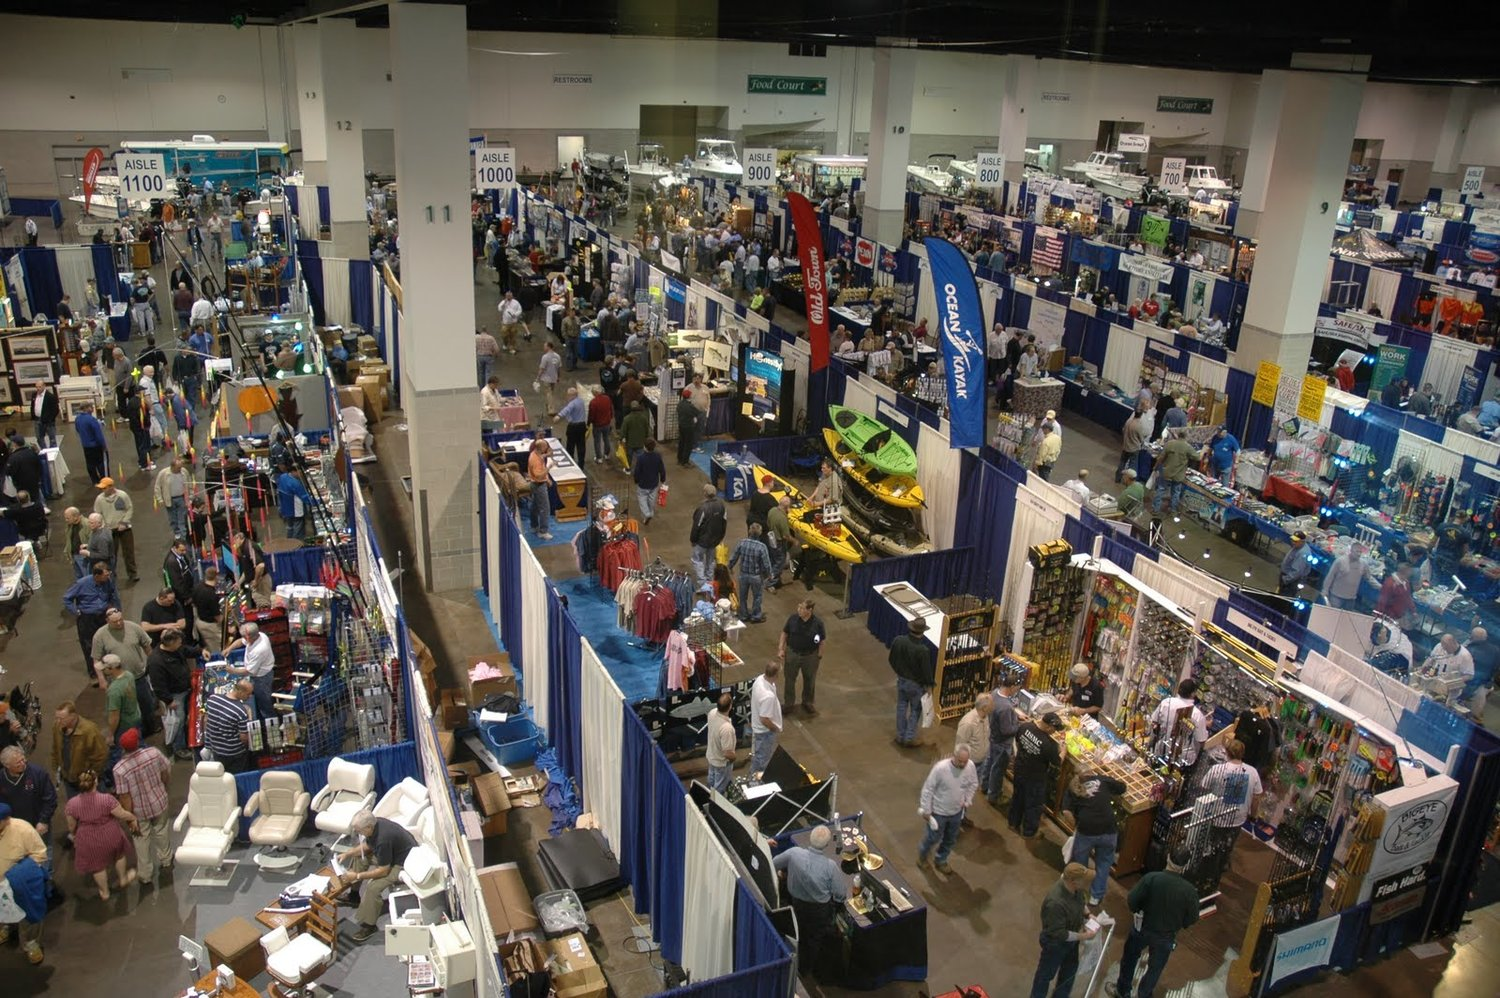 The New England Saltwater Fishing Show, March 22-24 at the Rhode Island Convention Center, will feature over 300 exhibitors and 60 fishing seminars. Visit www.nesaltwatershow.com for details.